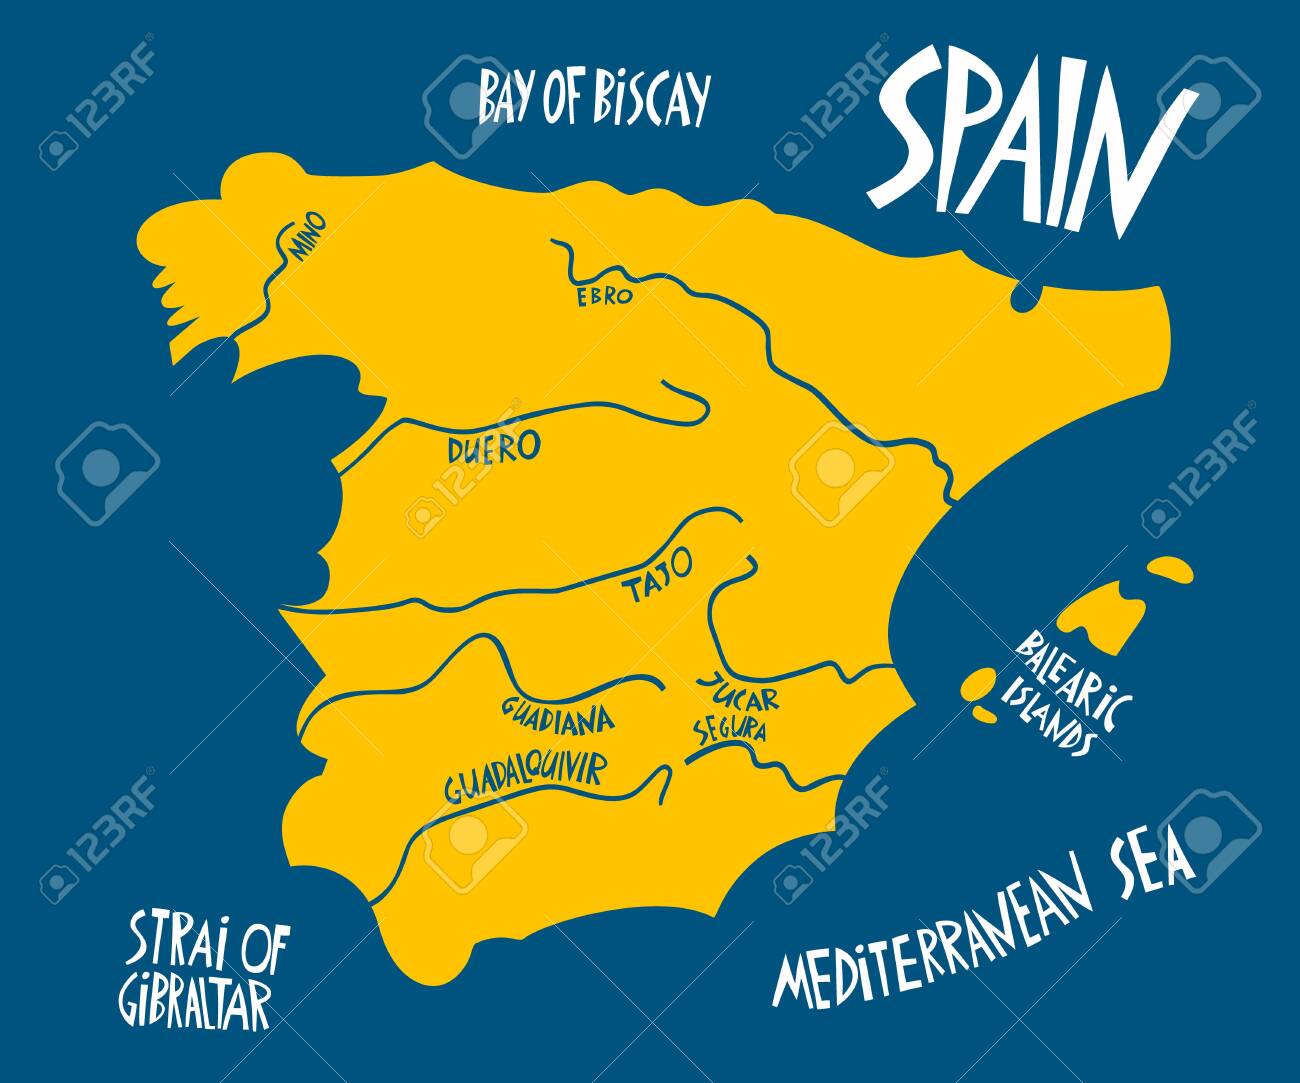 Picture of: Vector Hand Drawn Stylized Map Of Spain Kingdom Travel Illustration Royalty Free Cliparts Vectors And Stock Illustration Image 146077229